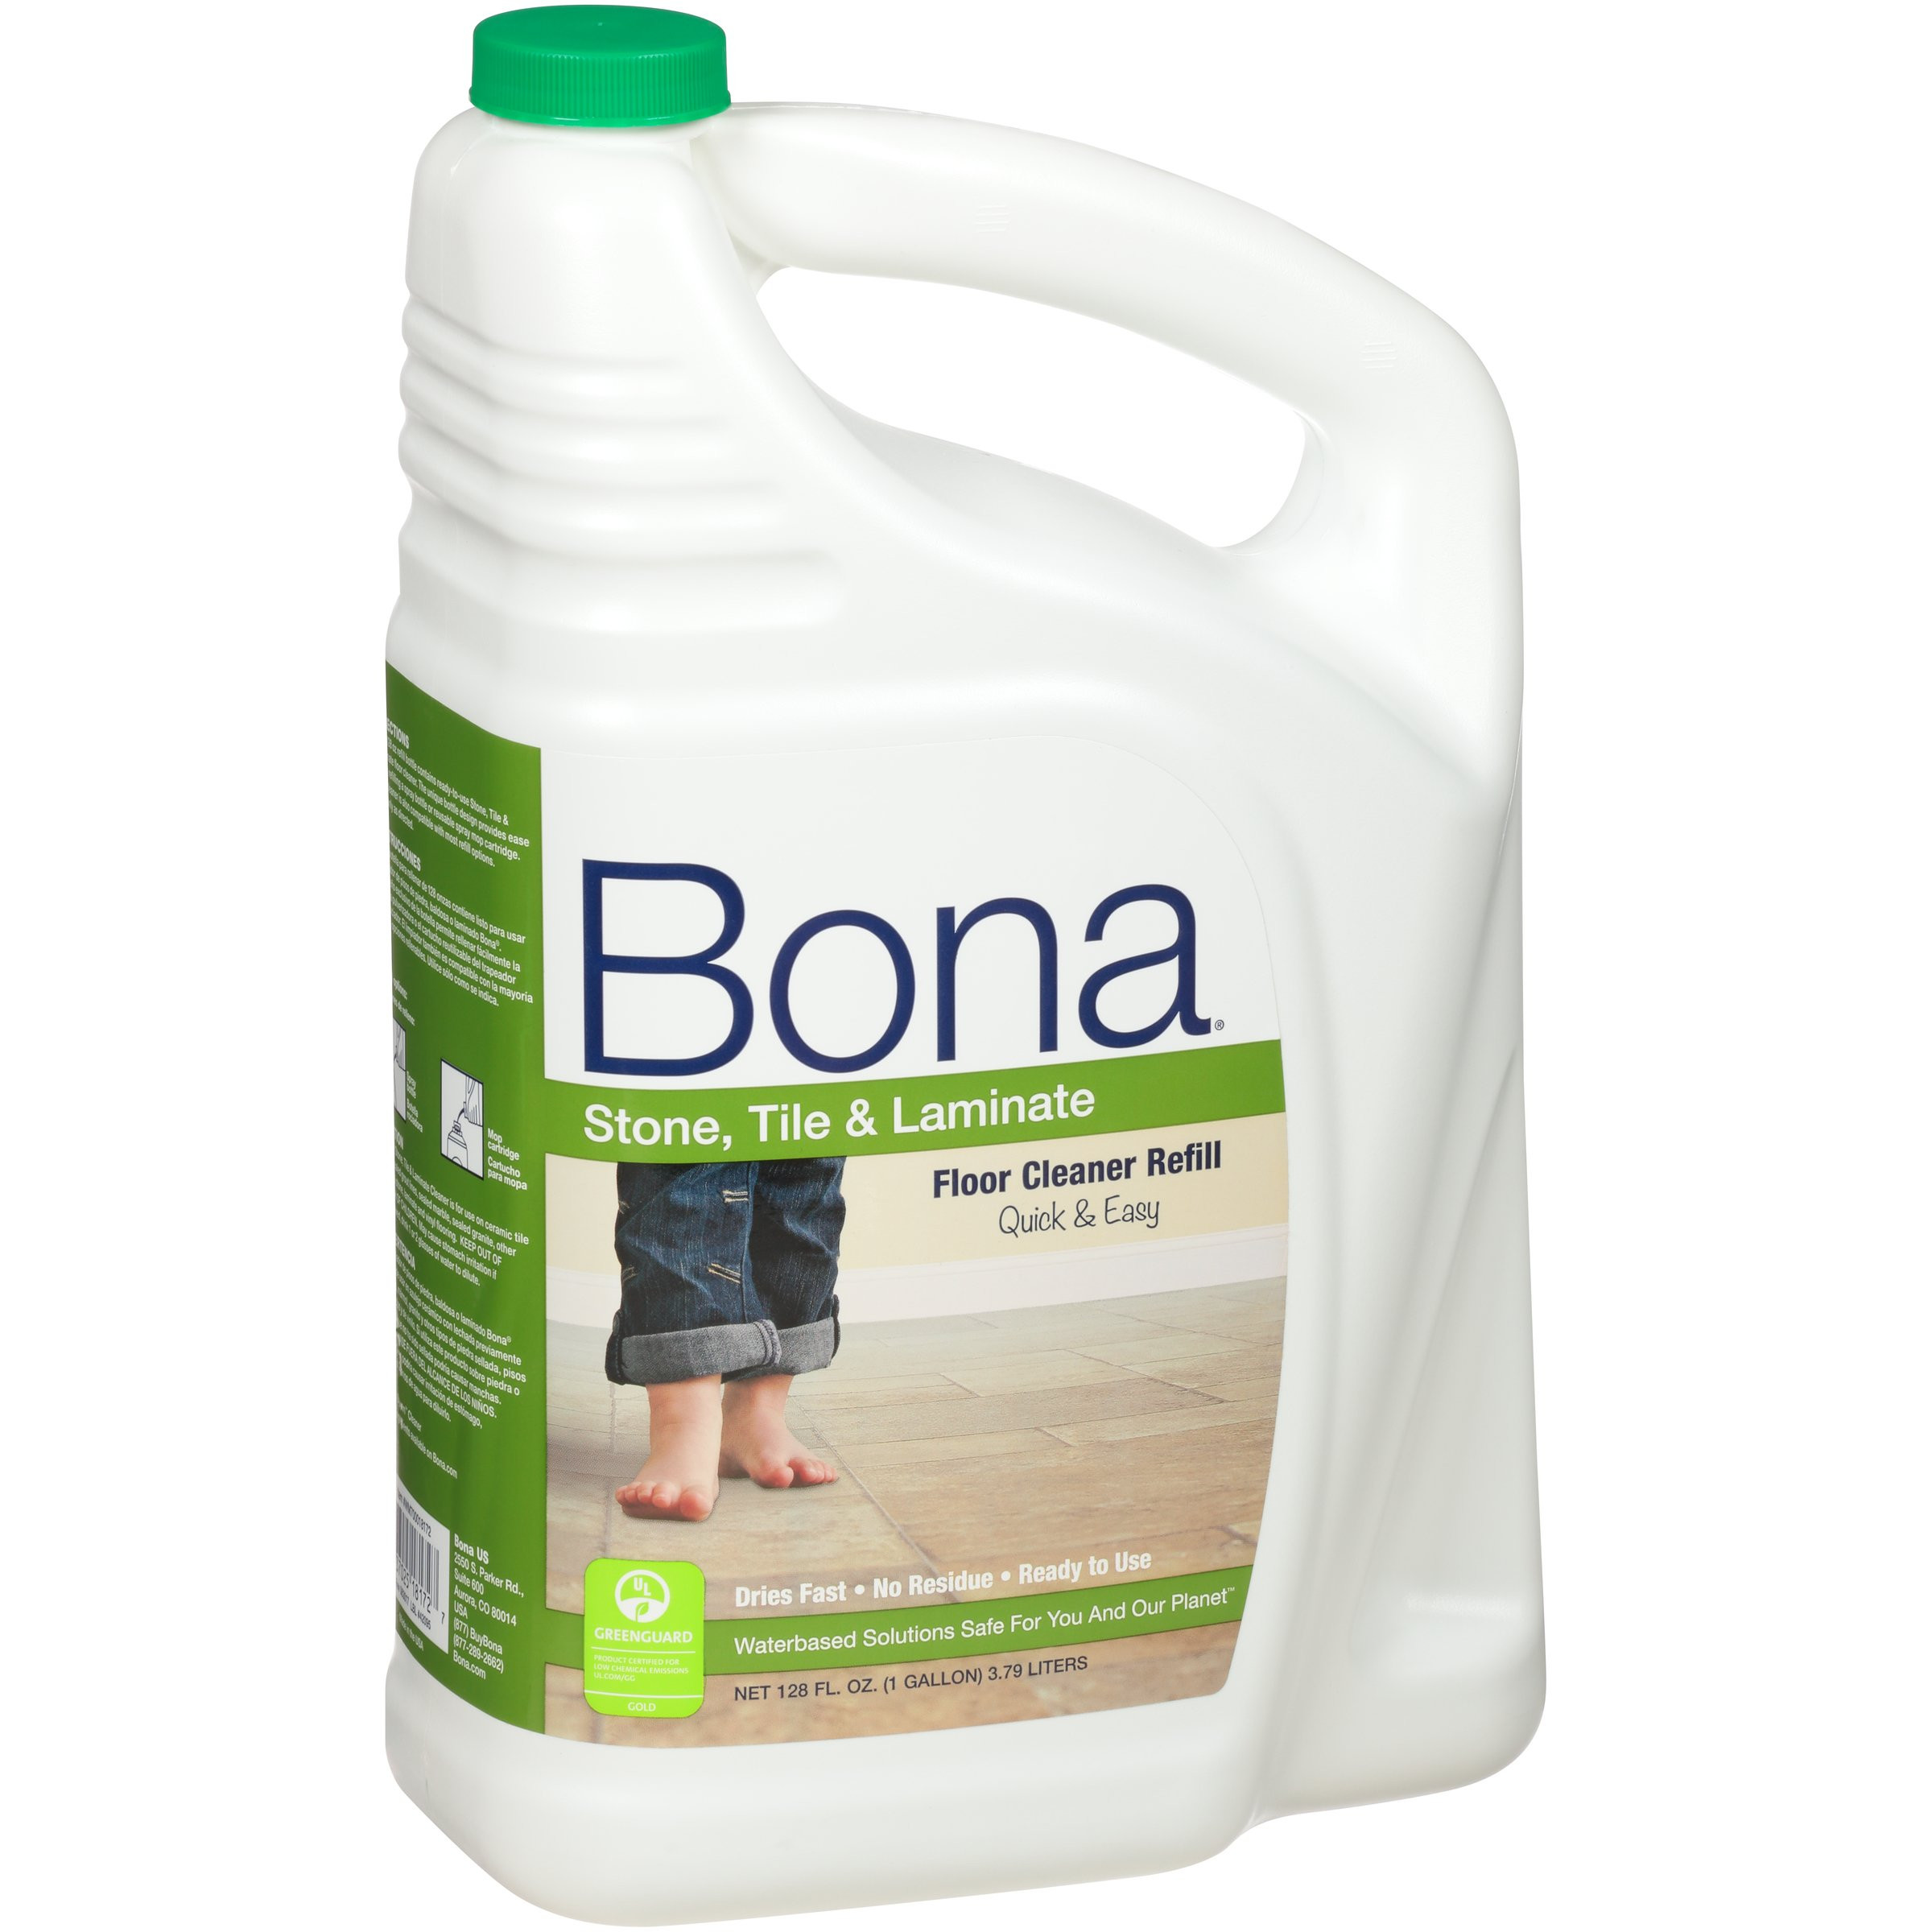 Bona Hardwood Floor Cleaner 32 Oz Of Amazon Com Bona Wm700018182 Free Simple Hardwood Floor Cleaner Throughout Bonaa Stone Tile Laminate Floor Cleaner Refill 128oz Pack May Vary